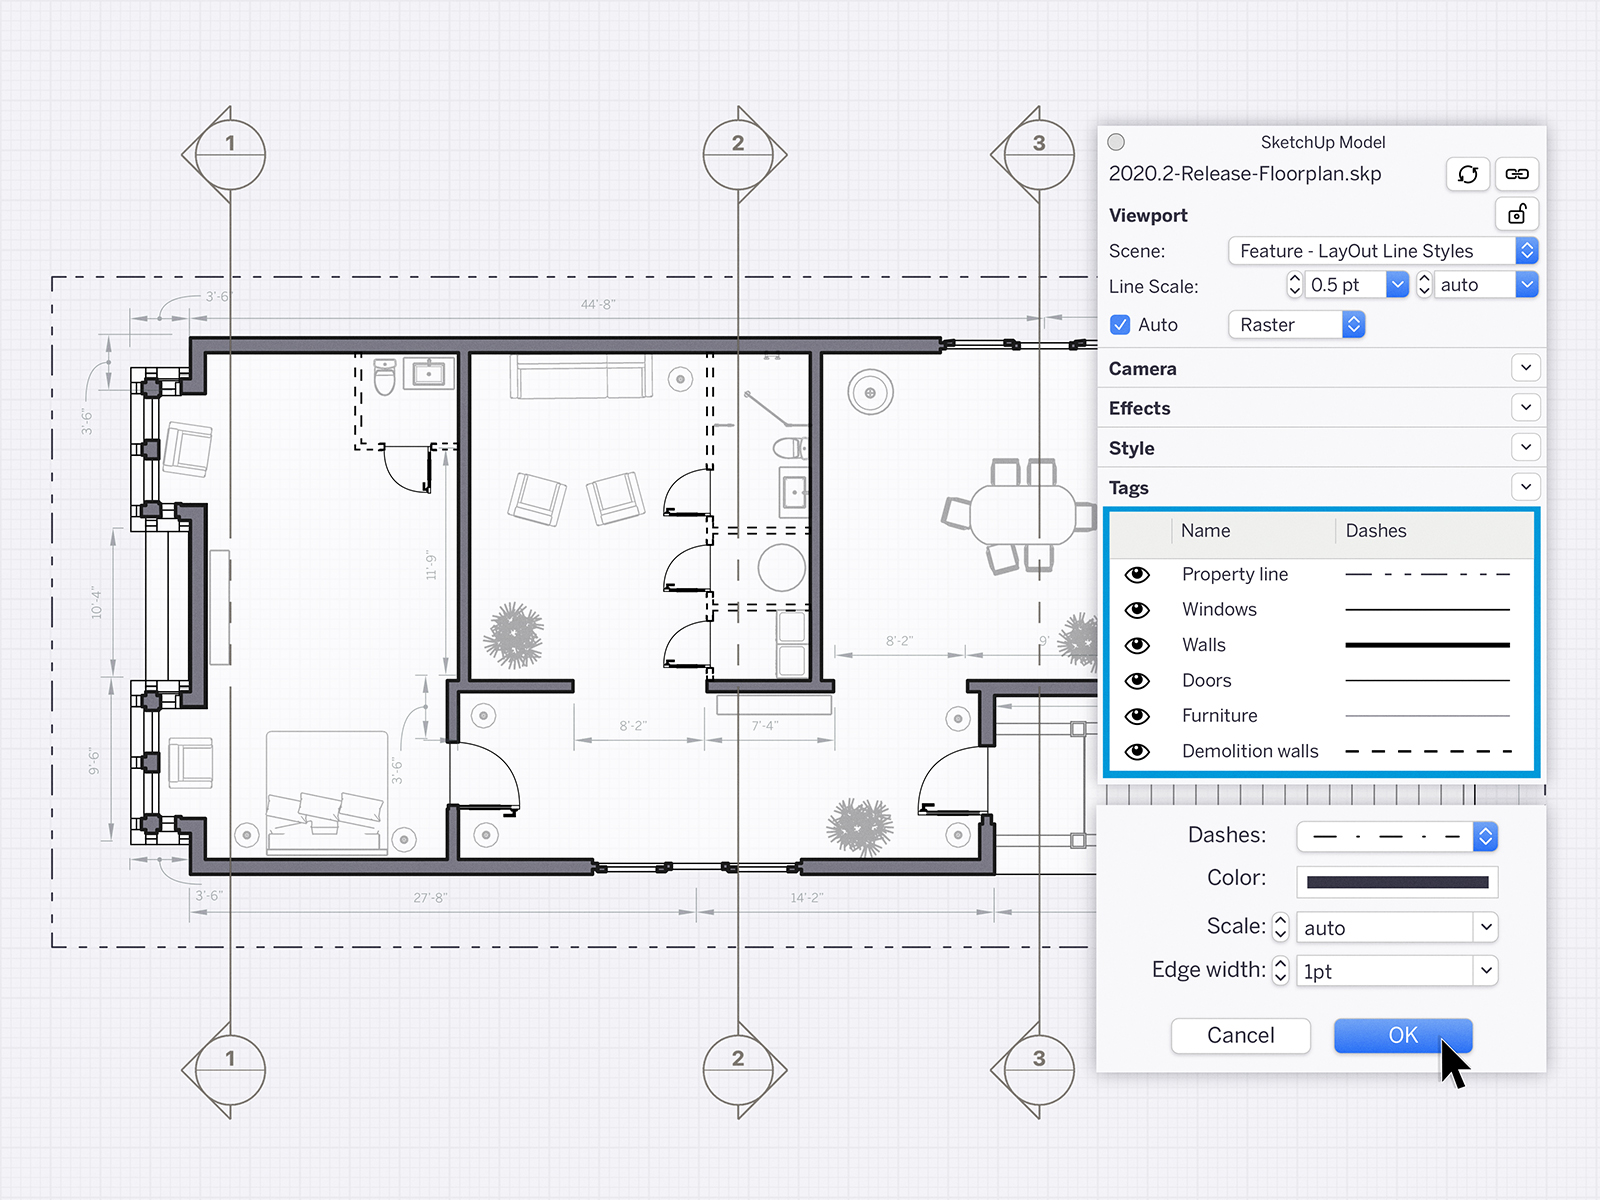 Turn your 3D models into detailed documents. With LayOut, you can customize your views, add details and dimensions, and create title blocks. The best part: when your 3D model updates, so do your drawings.